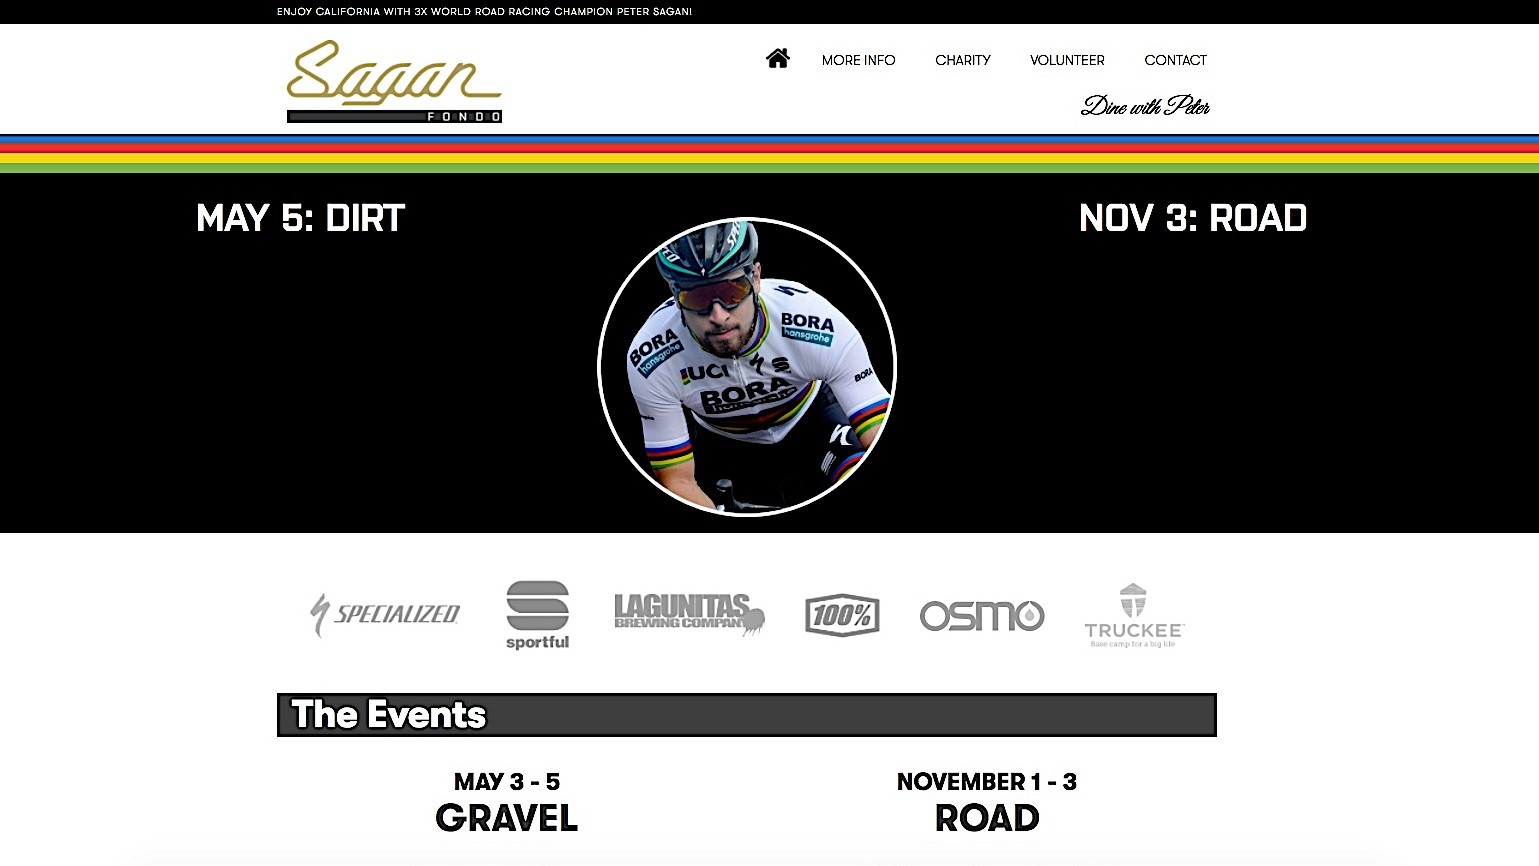 Peter Sagan's May 5 Fondo will be a gravel affair in the Lake Tahoe area